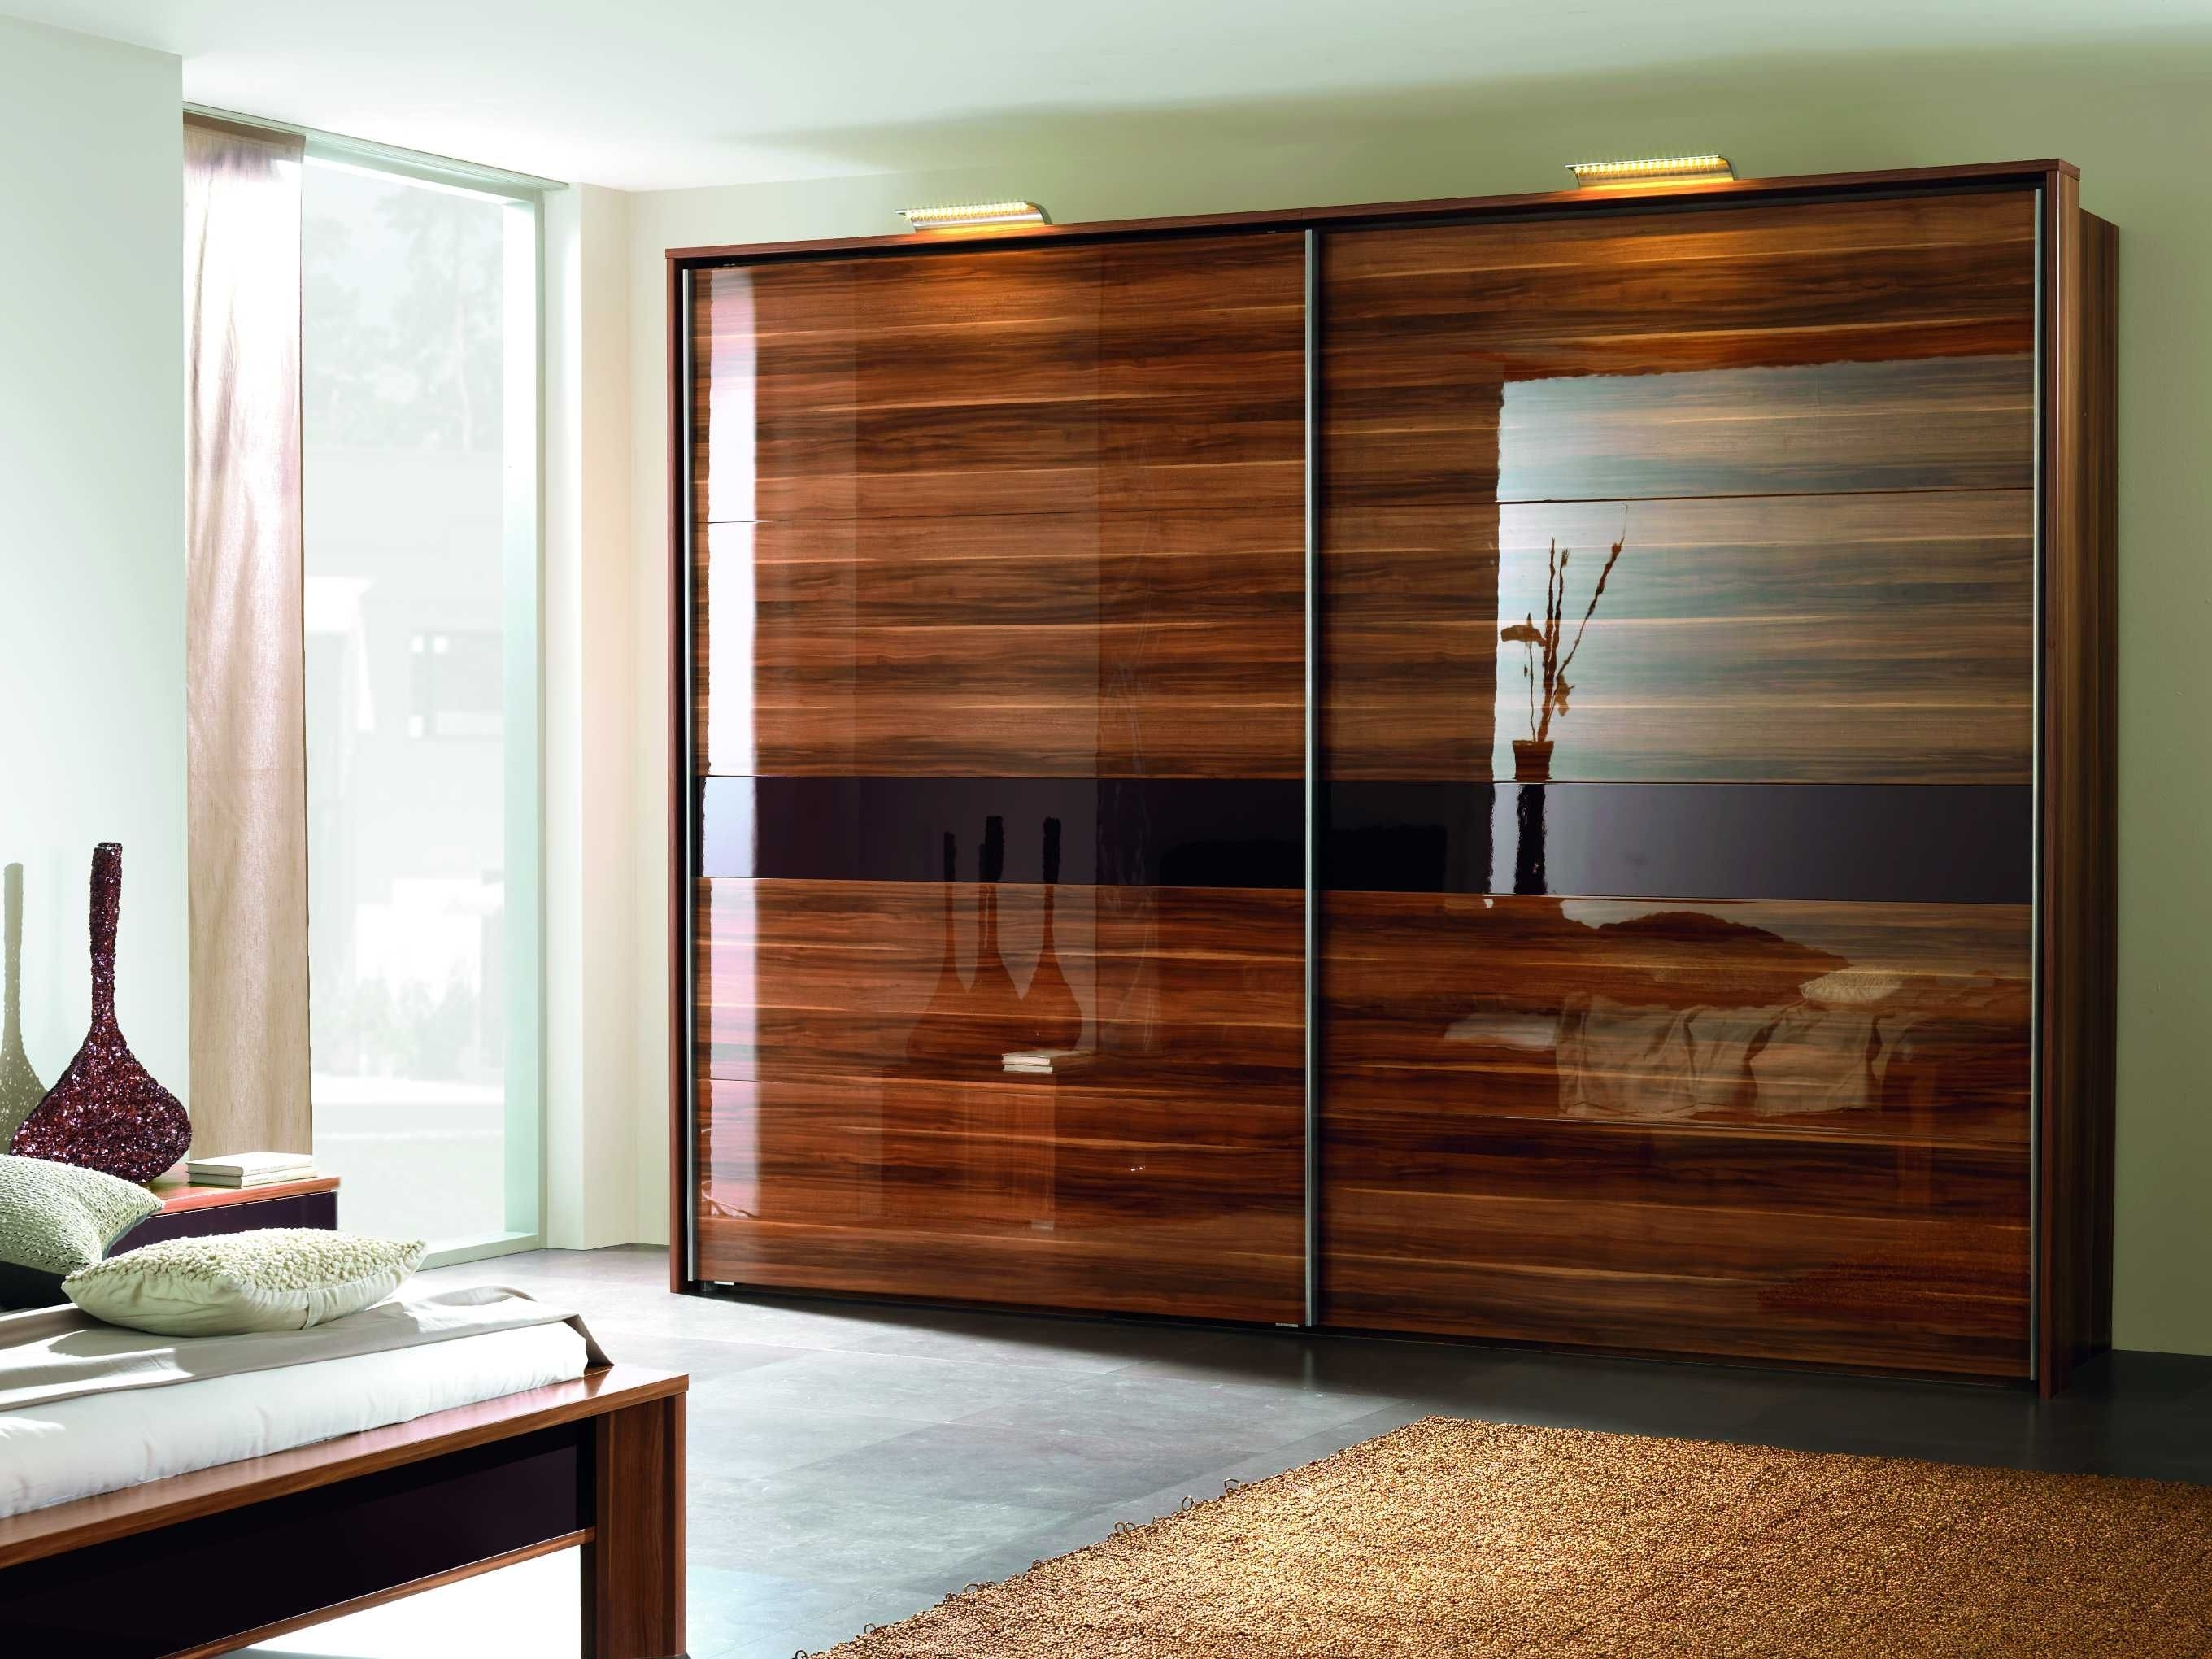 2018 Cream Gloss Wardrobes Doors With Furniture, Luxury Wardrobe Design With Sliding Doors And Cool (View 4 of 15)